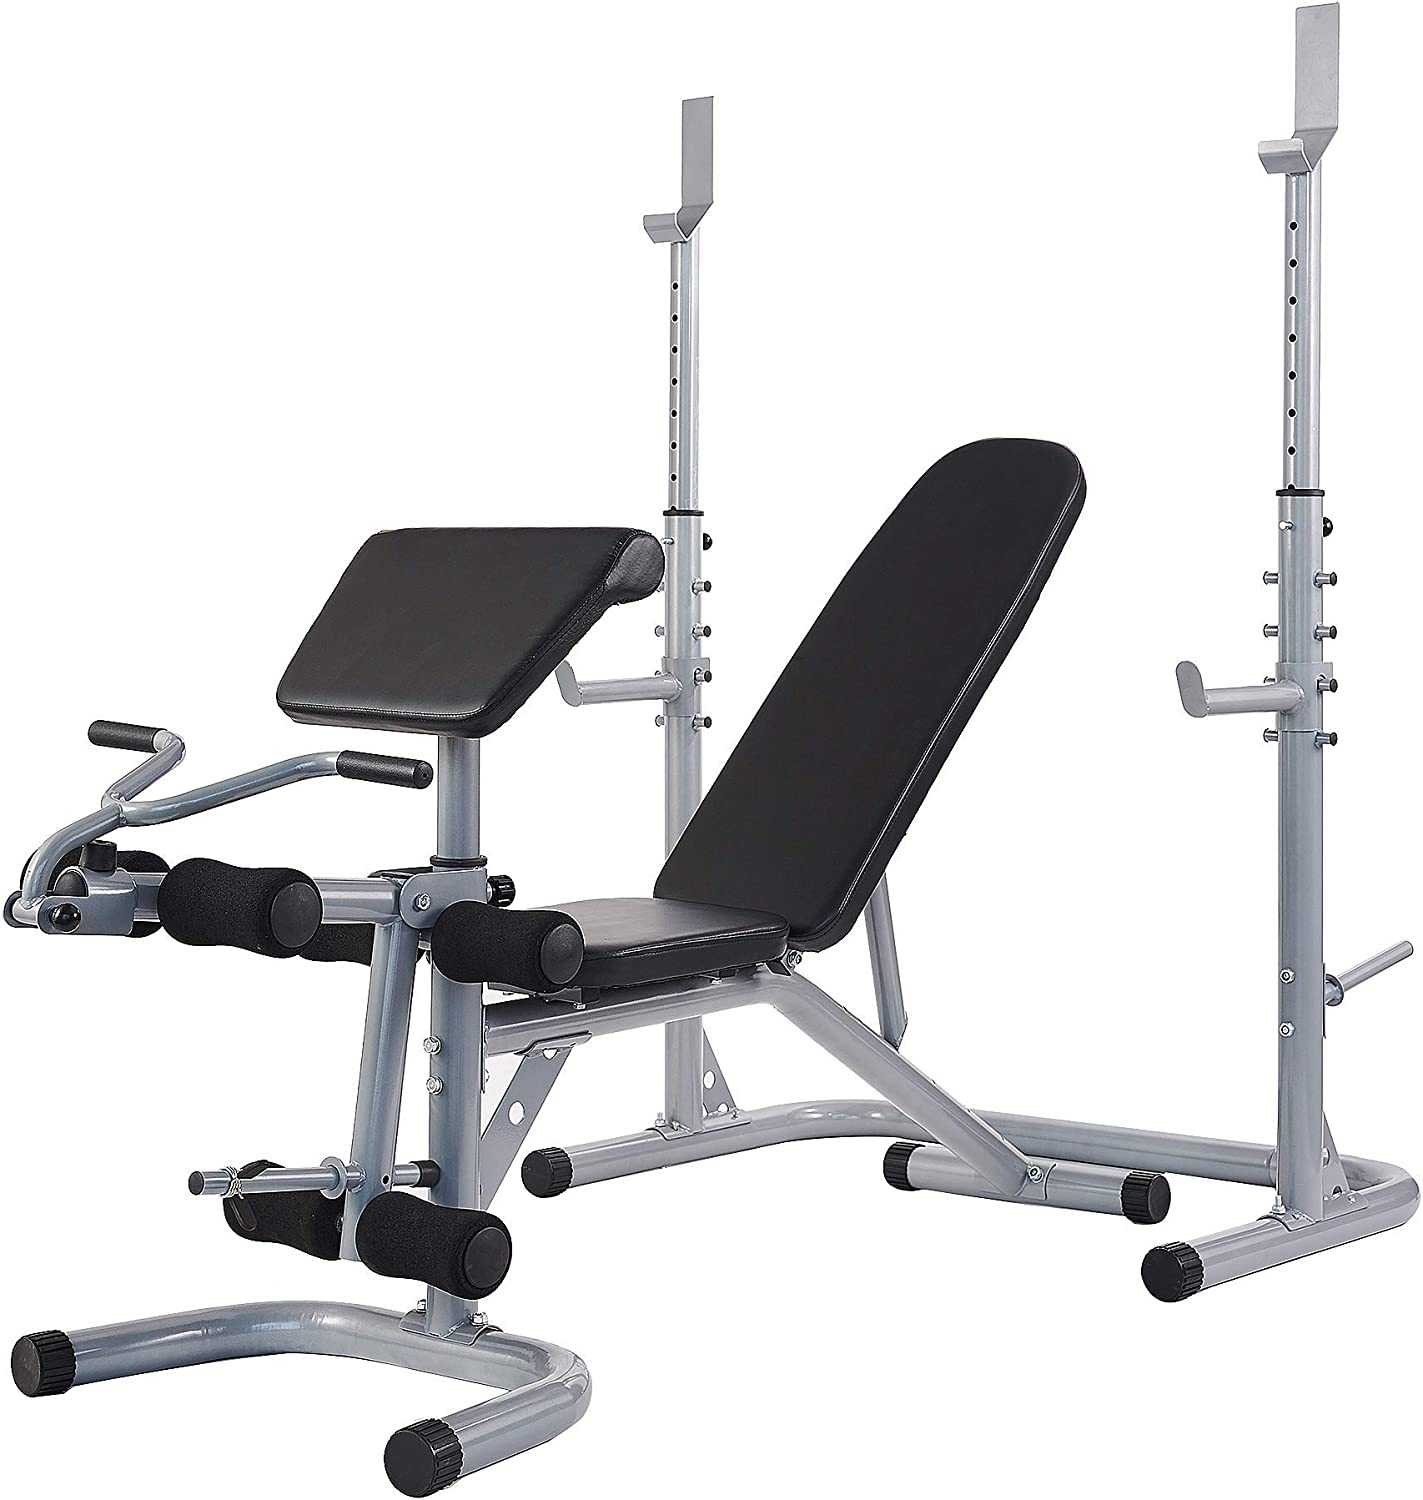 Sporzon! Multifunctional workout bench